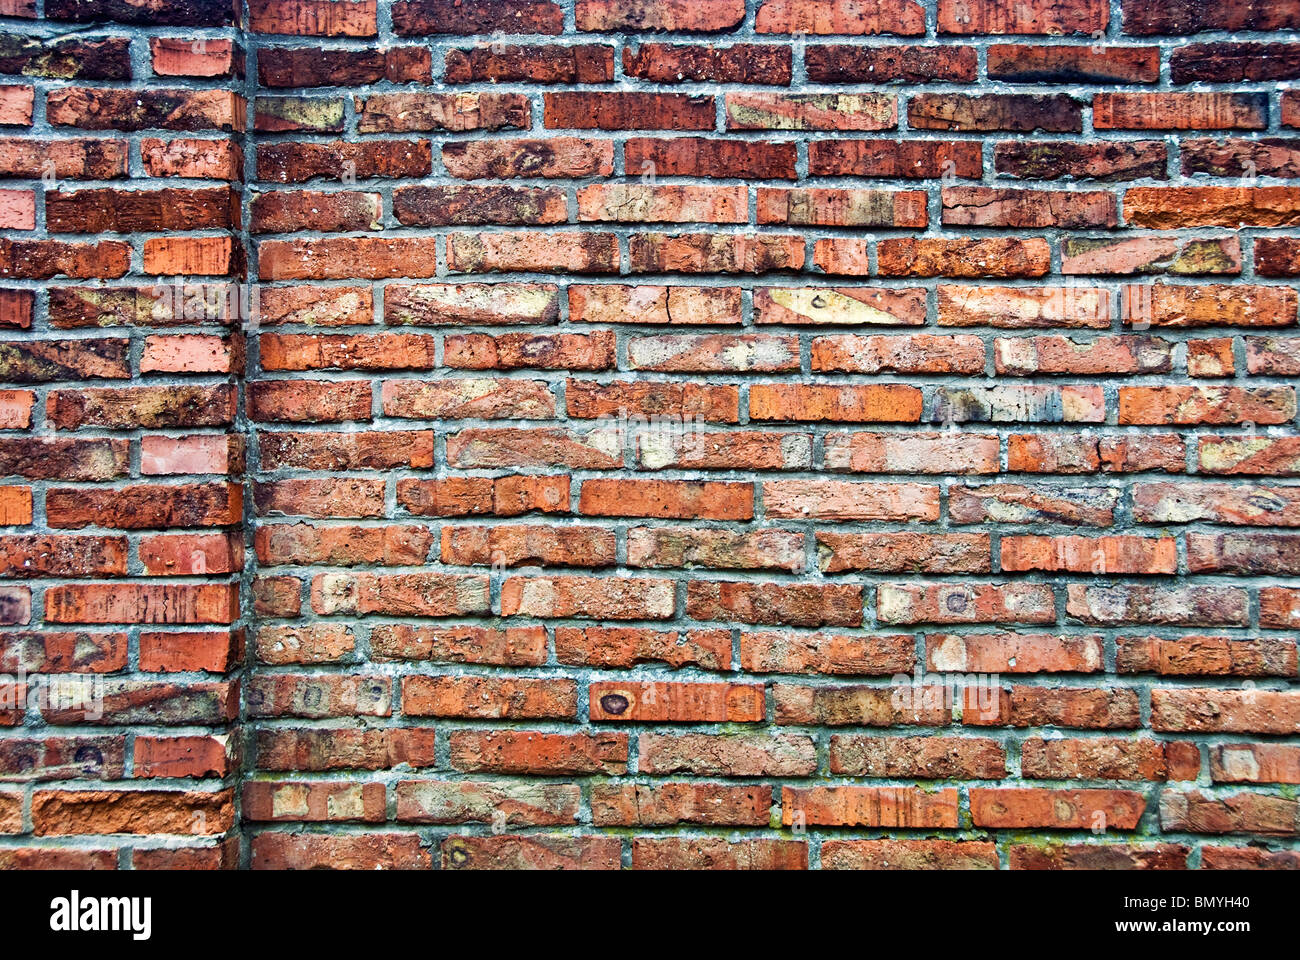 red bricks wall background - Stock Image